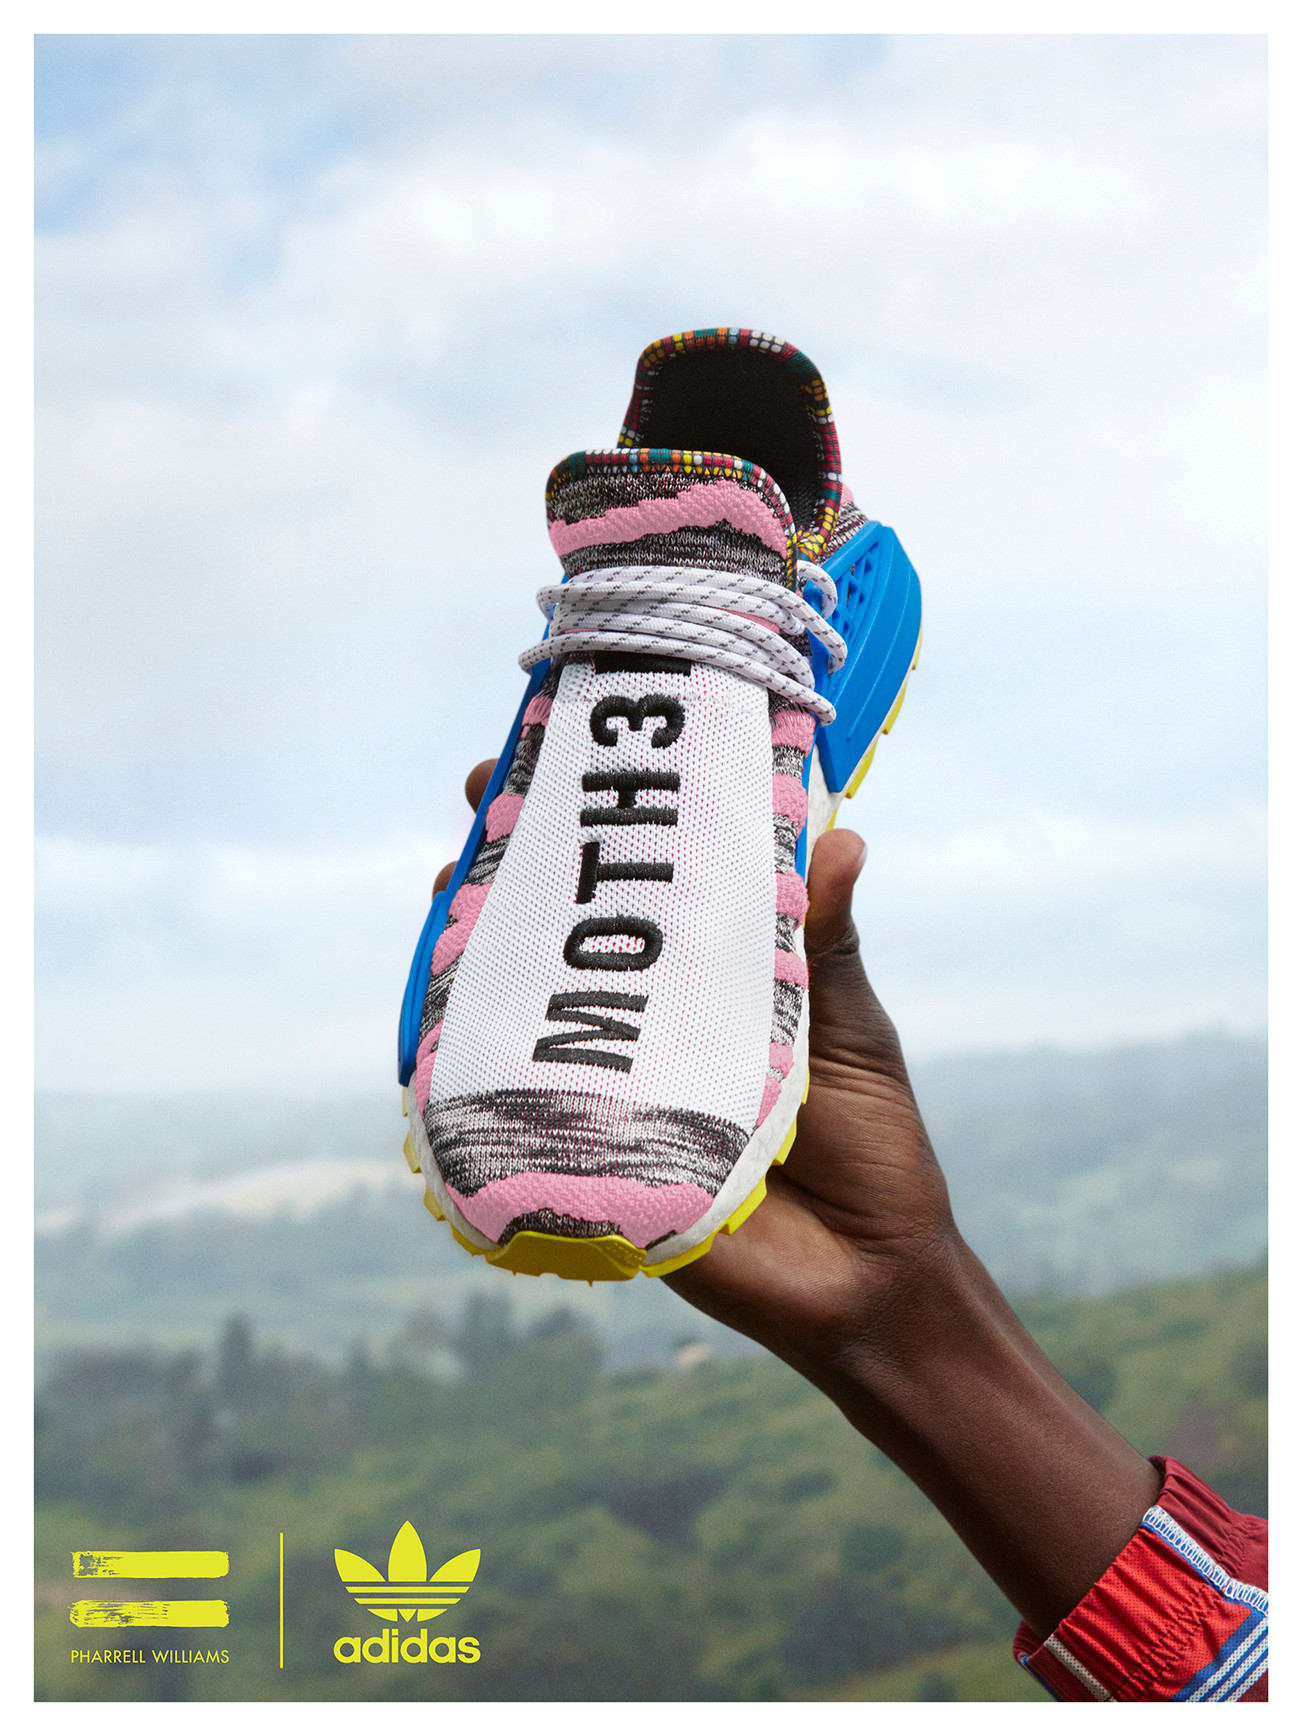 Pharrell & adidas Originals Look to Asia and East Africa for